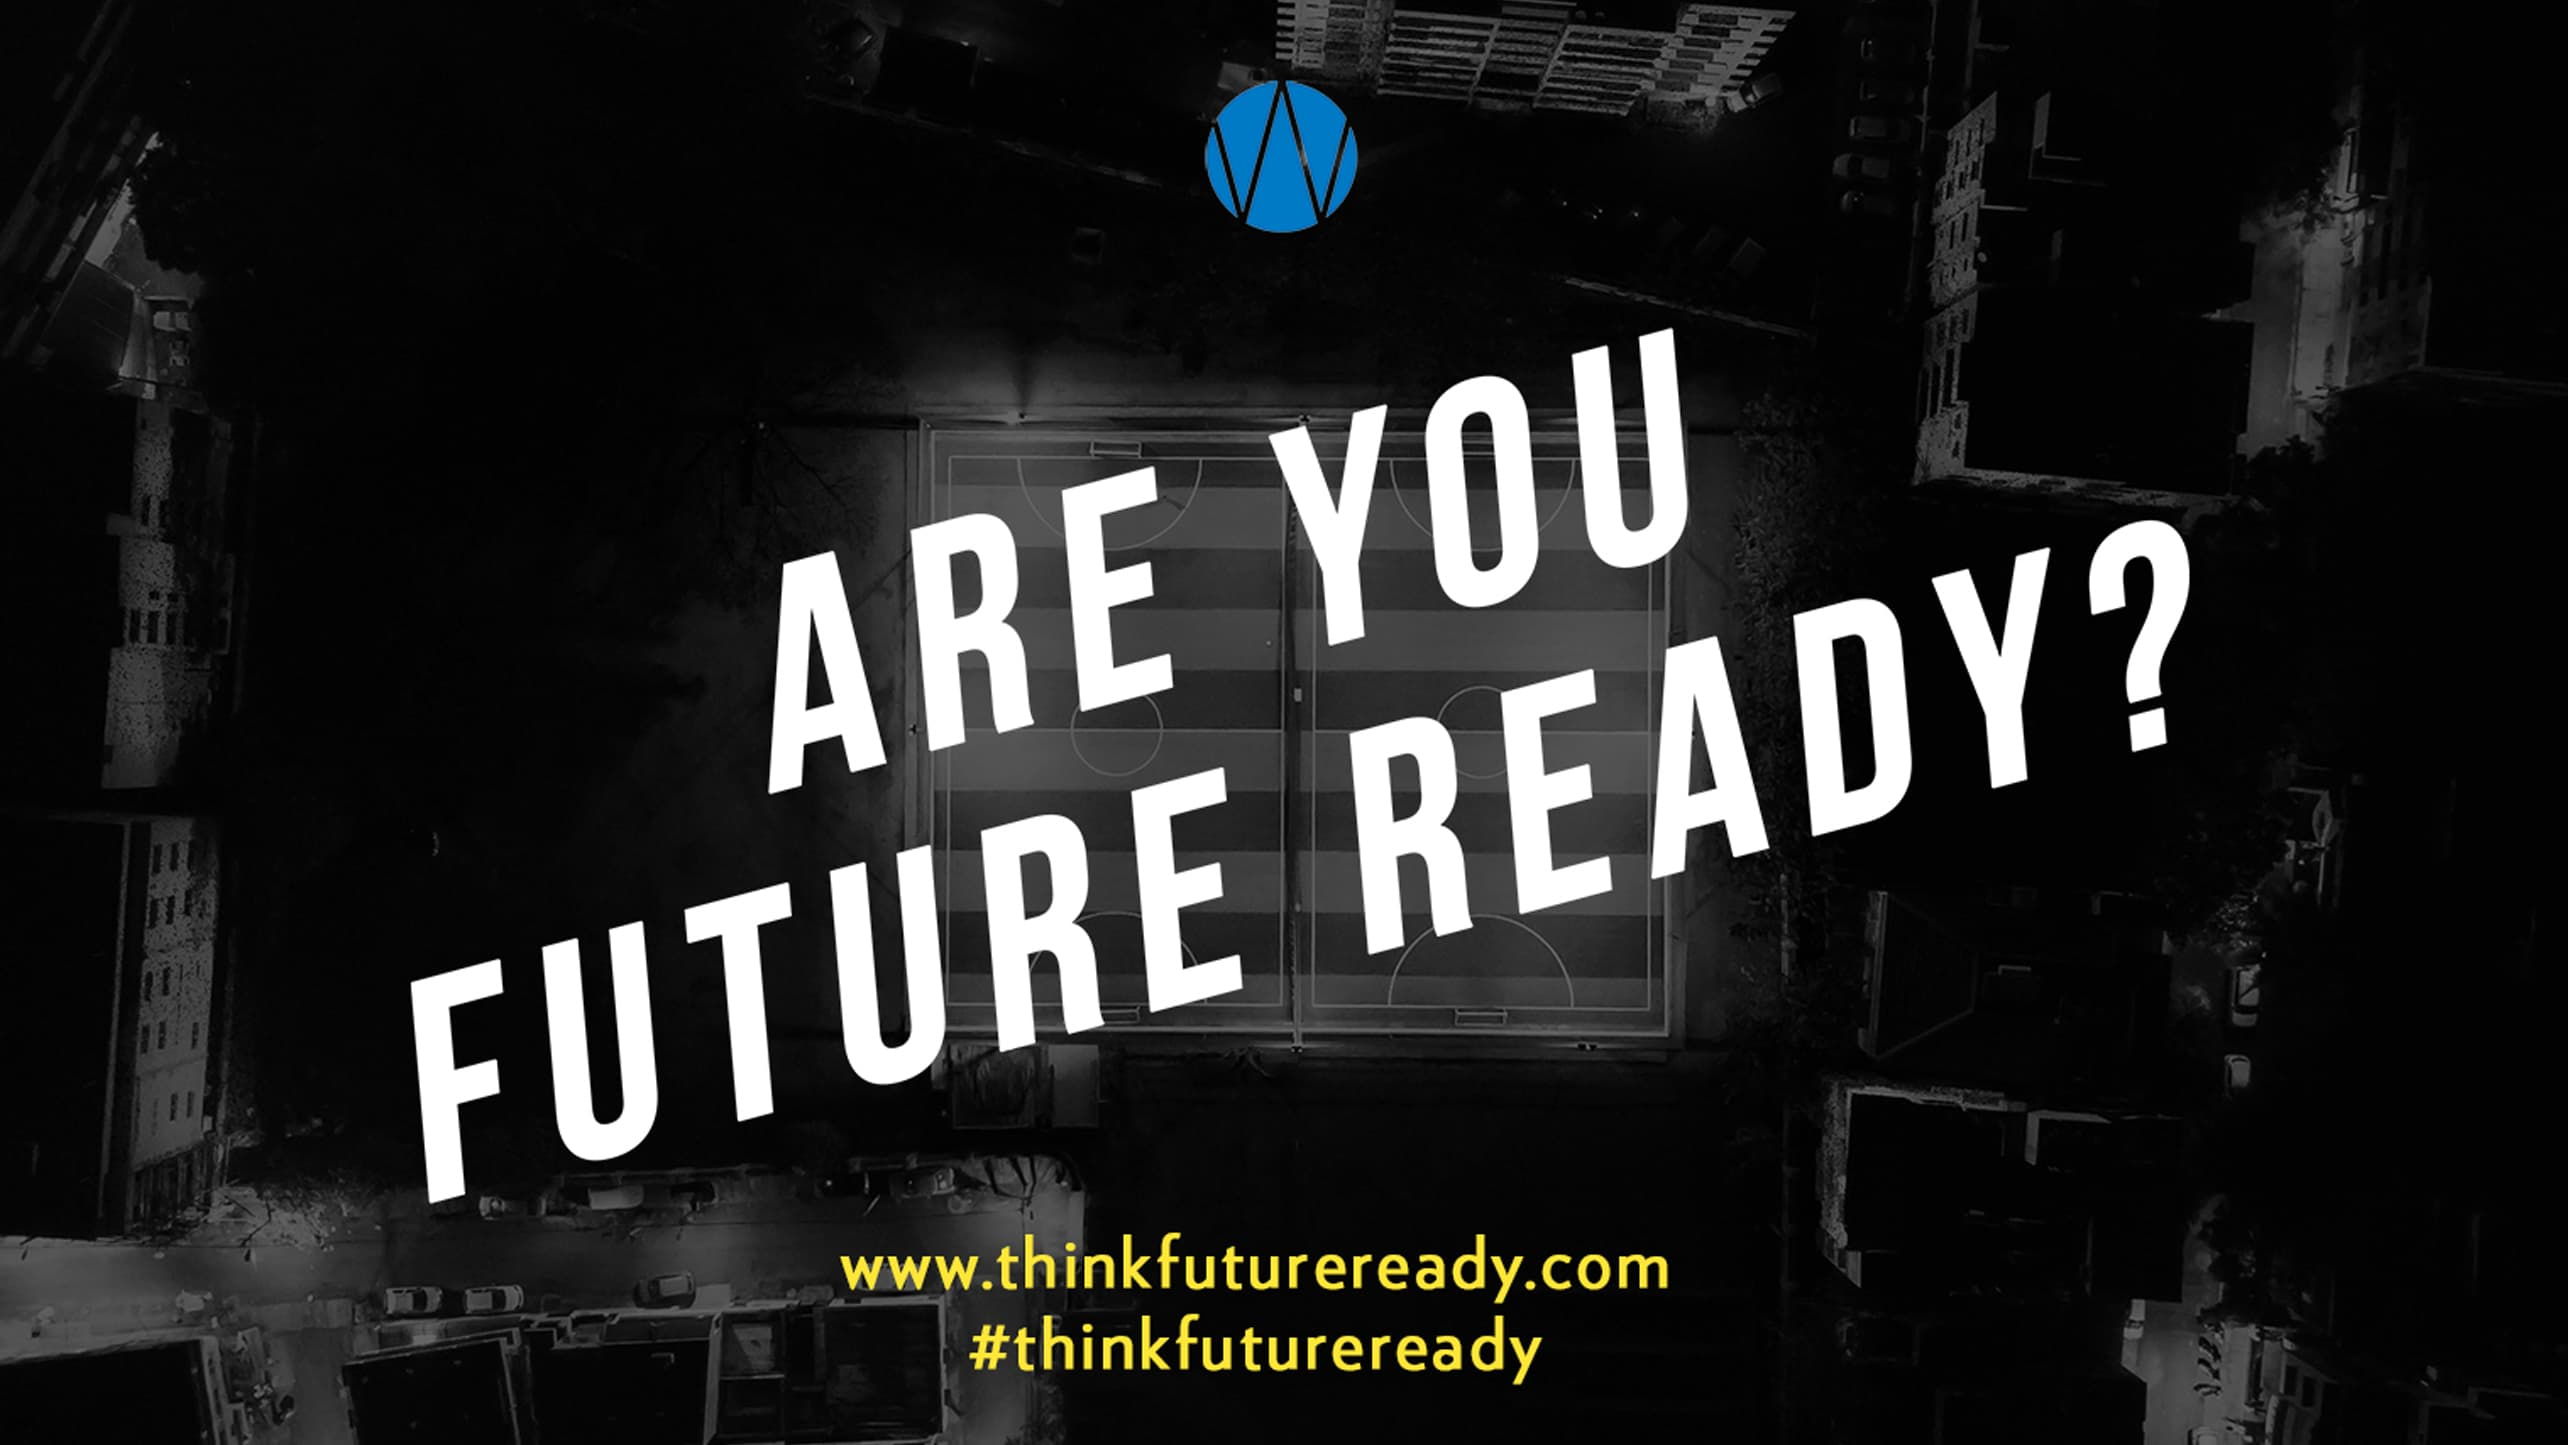 WPP 0718 Featured Technology AreYouFutureReady1 2568x1445